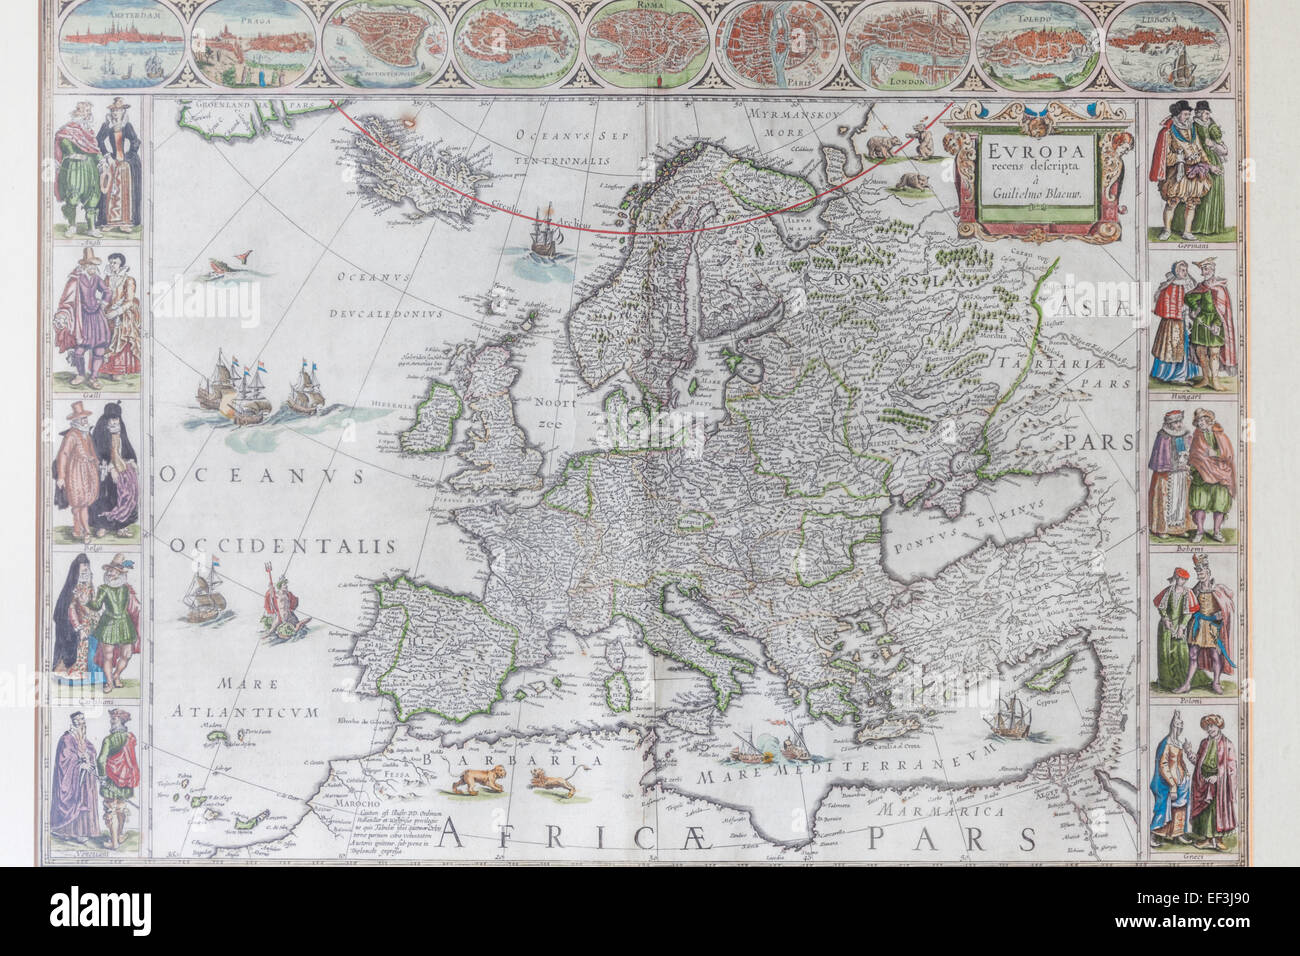 Maps Of Europe 16th 17th Centuries Map A How Europe Was Divided